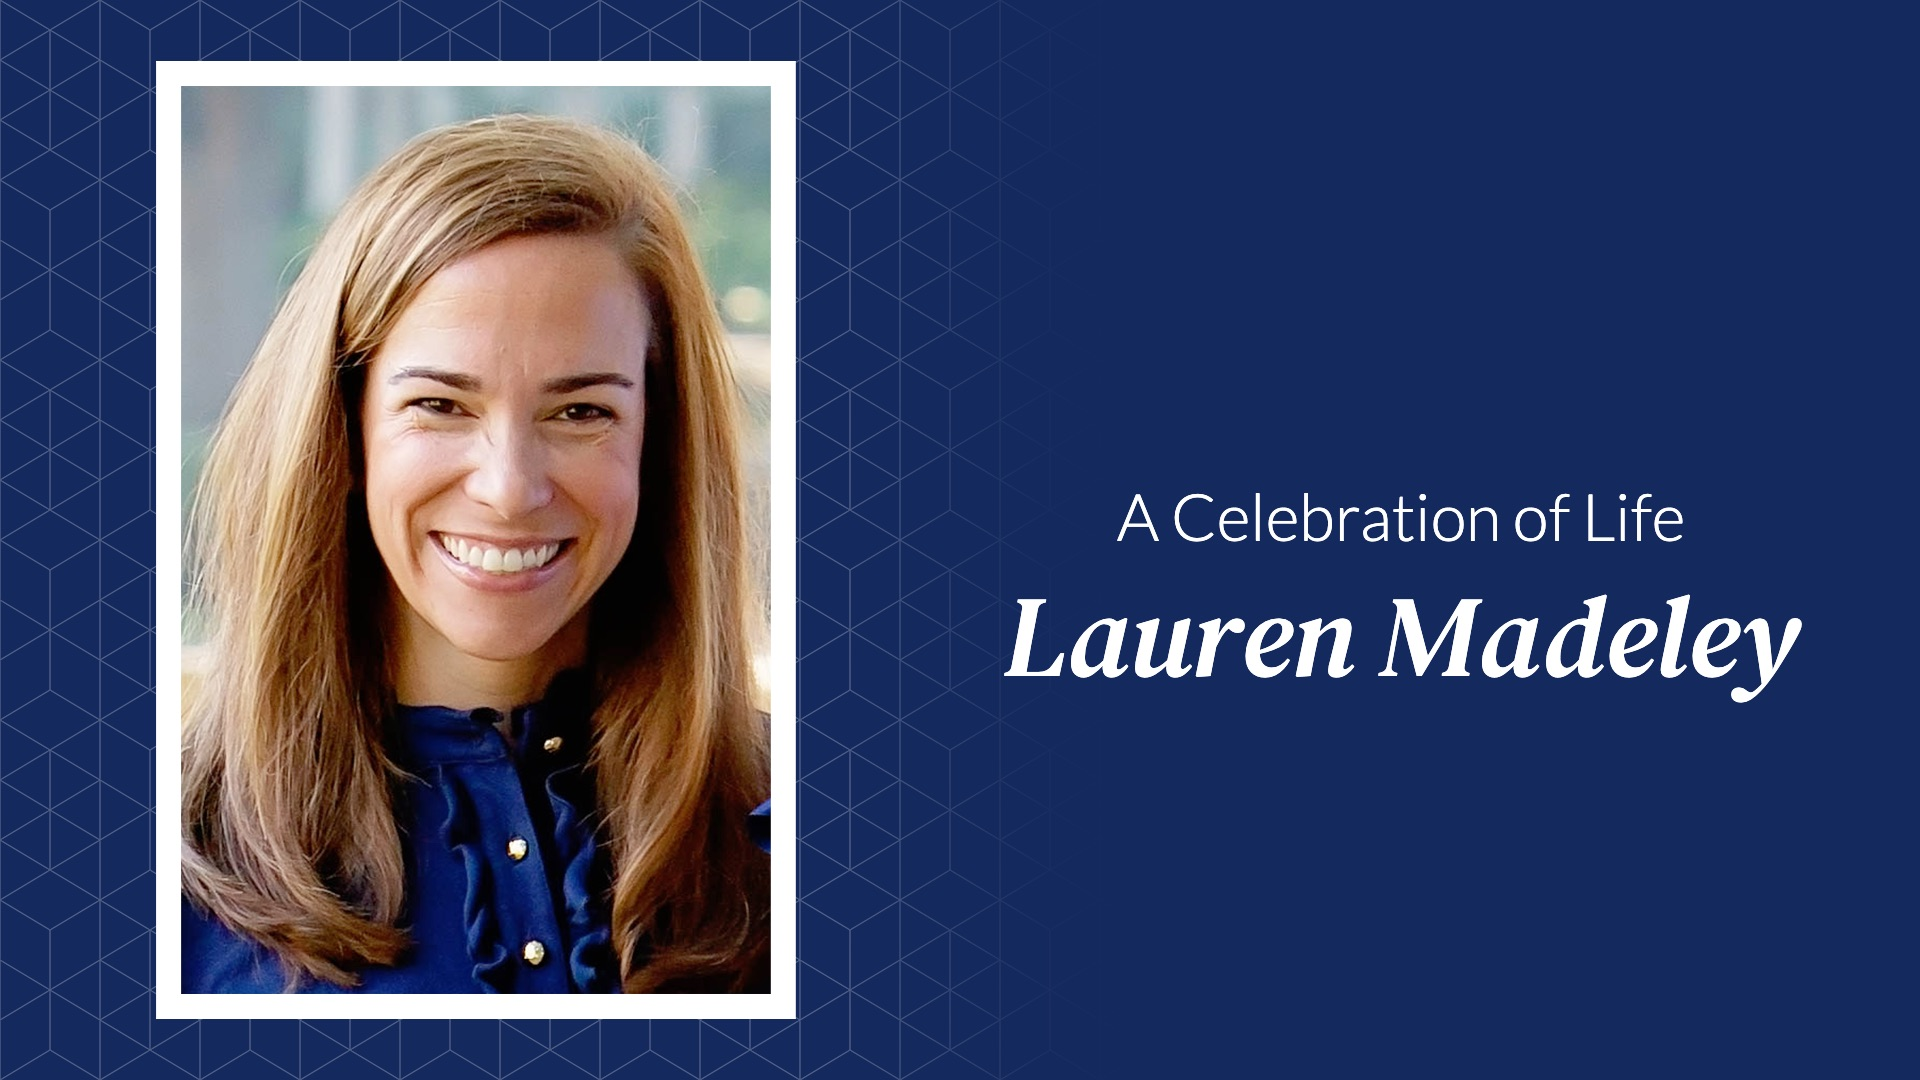 Celebration of Life for Lauren Madeley (Full Celebration)